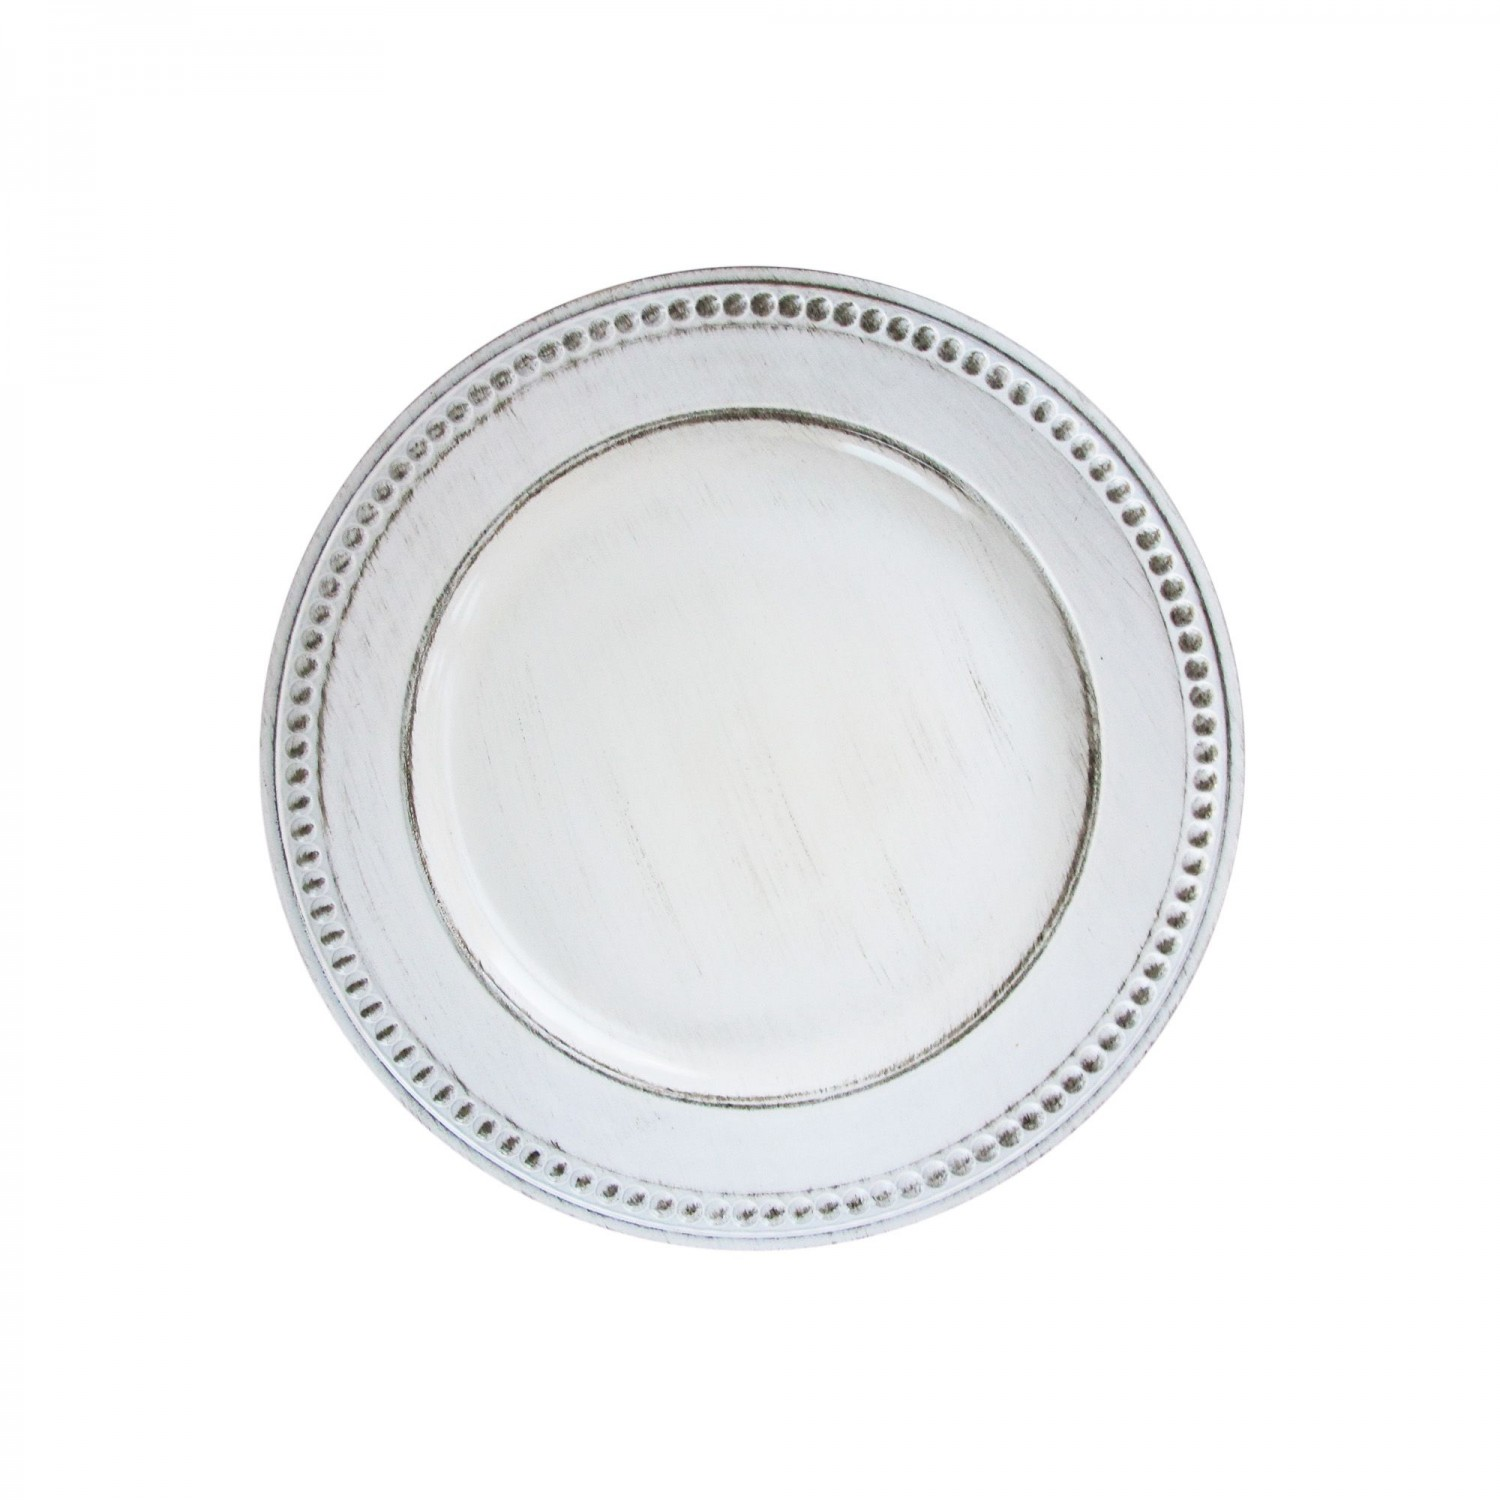 The Jay Companies 1270281 Round White Beaded Antique Charger Plate 14""